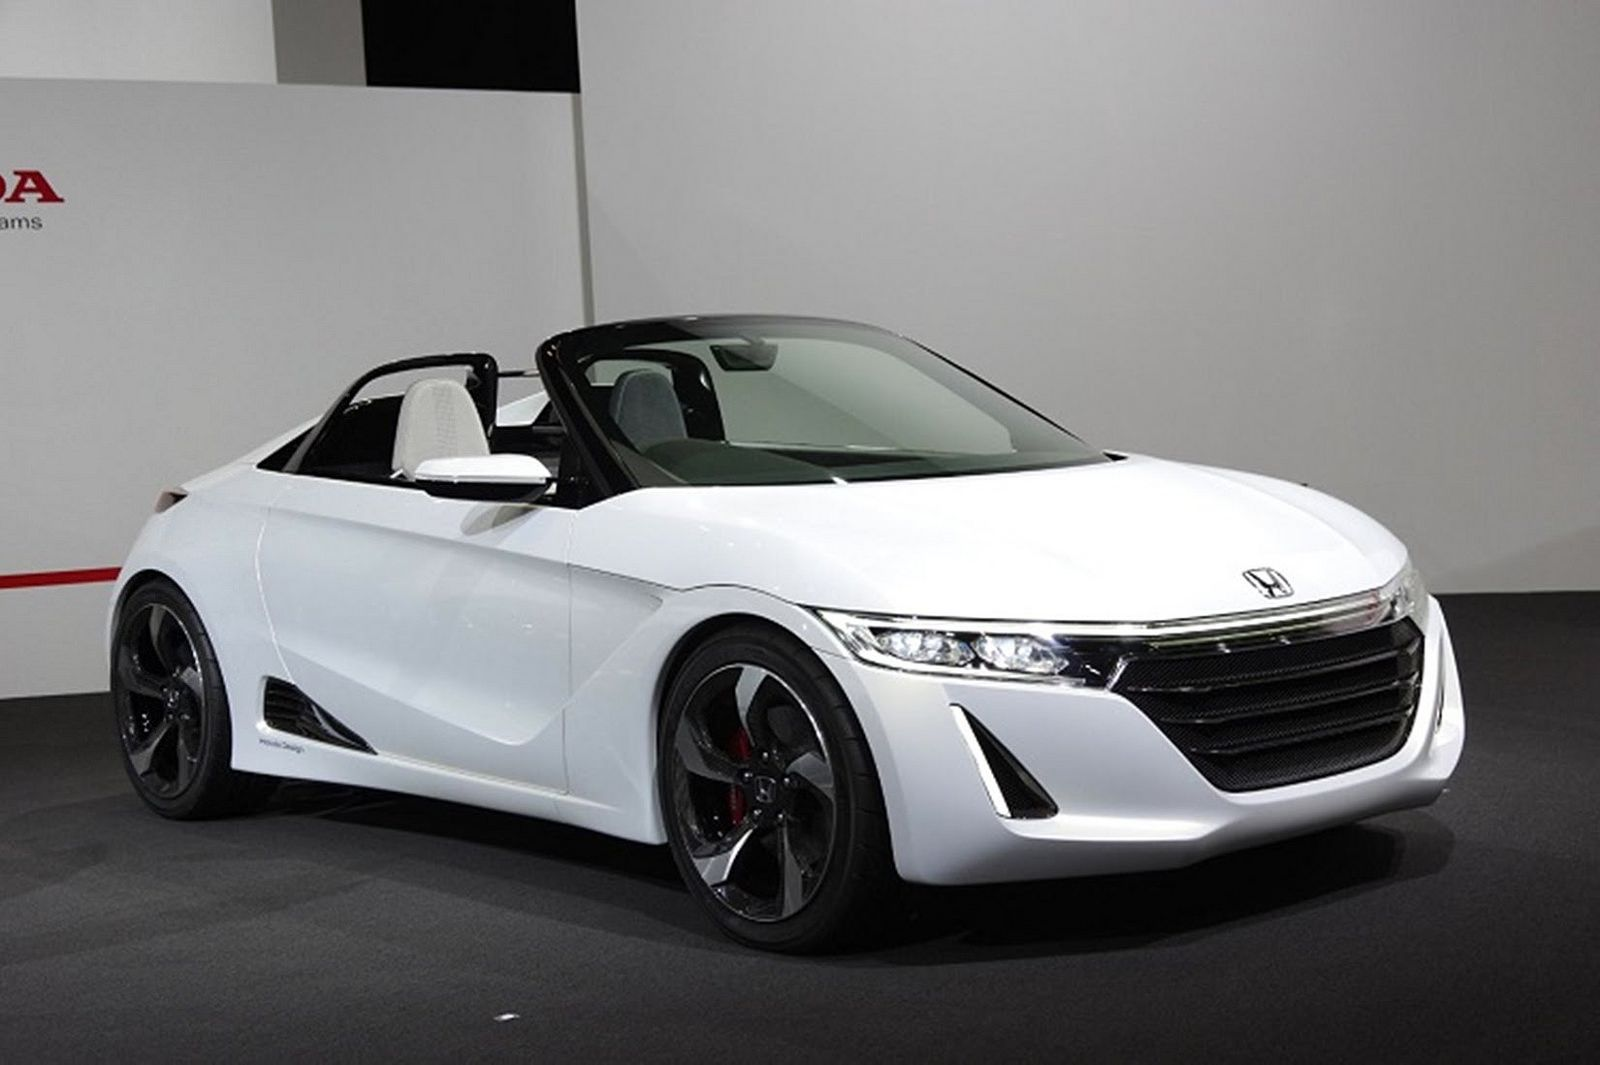 2016 Honda S660 Specs, Release And Price Ford sports